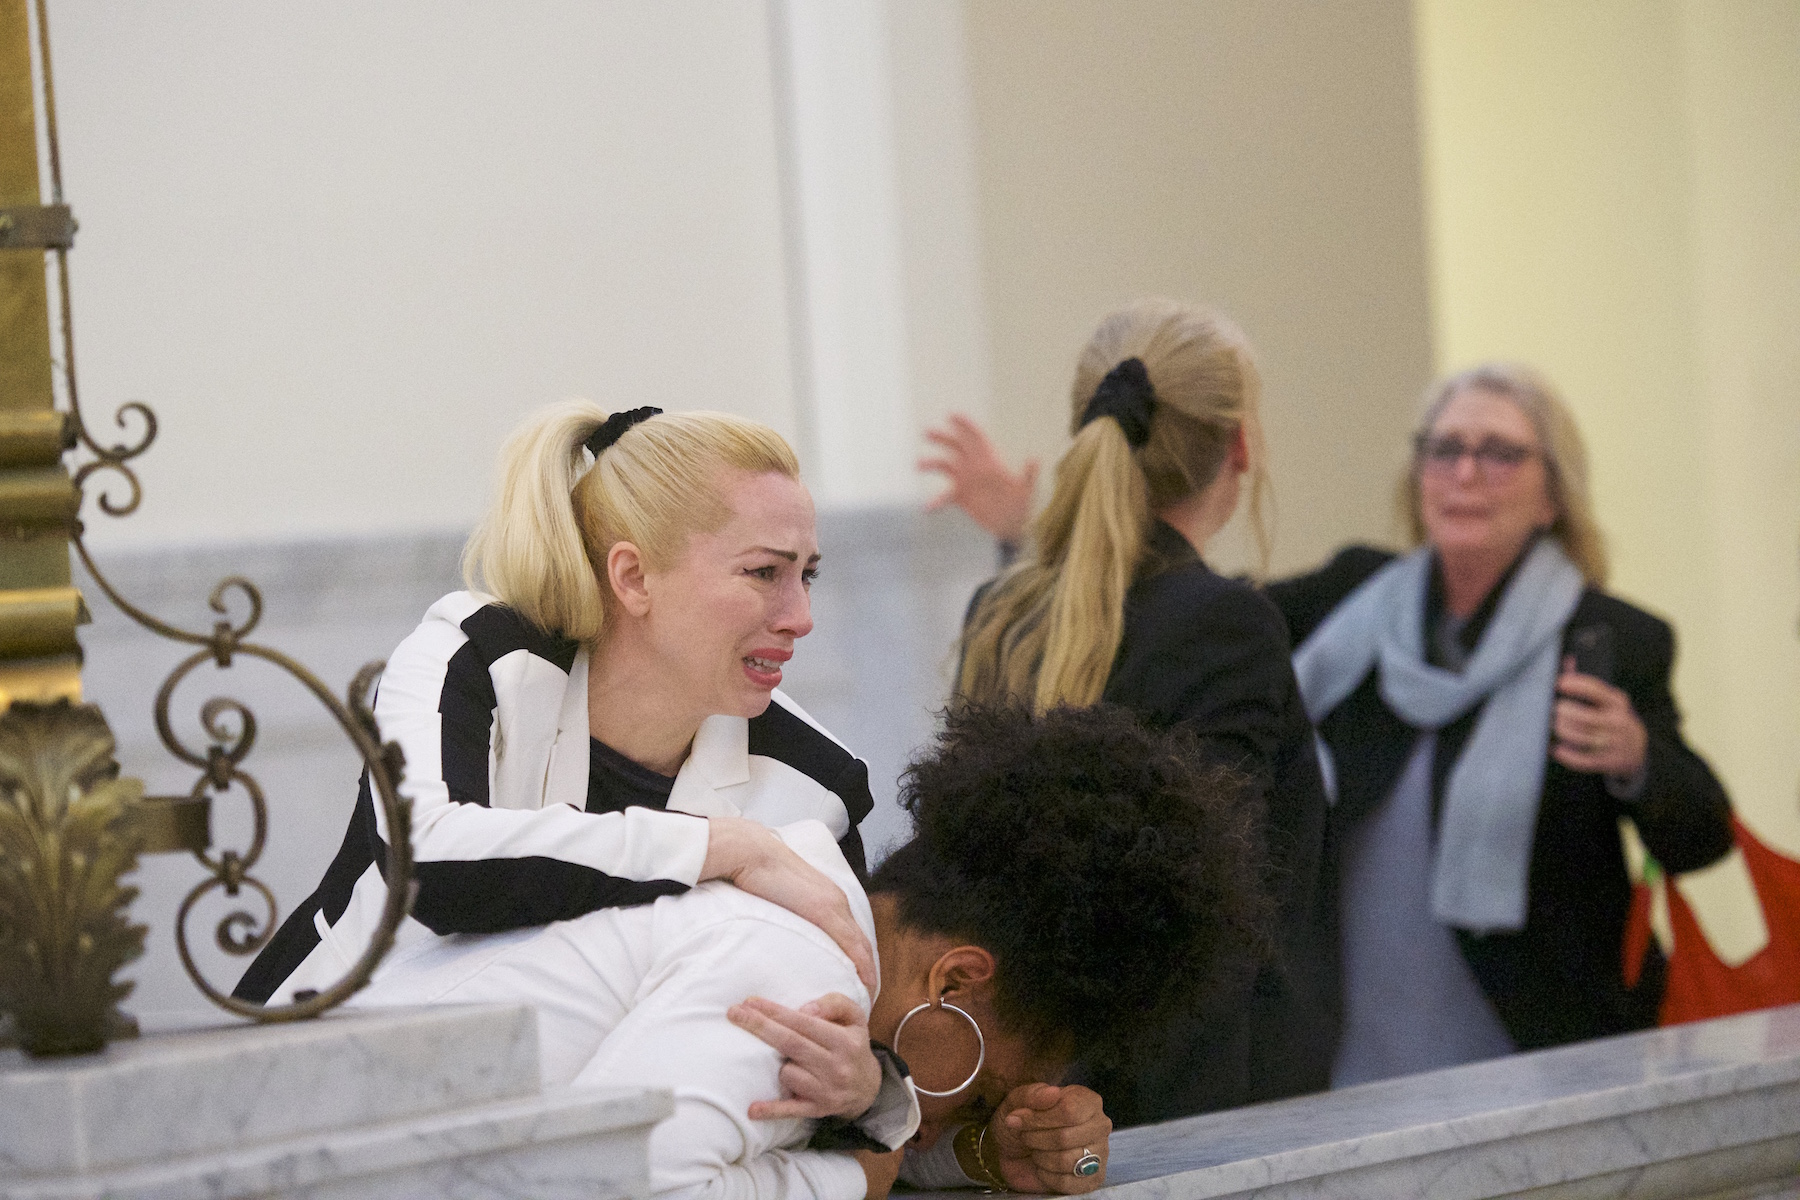 <div class='meta'><div class='origin-logo' data-origin='none'></div><span class='caption-text' data-credit='Dominick Reuter/AFP/Getty Images'>Bill Cosby accusers Caroline Heldman, Lili Bernard and Victoria Valentino react after the guilty on all counts verdict was delivered in the sexual assault retrial.</span></div>